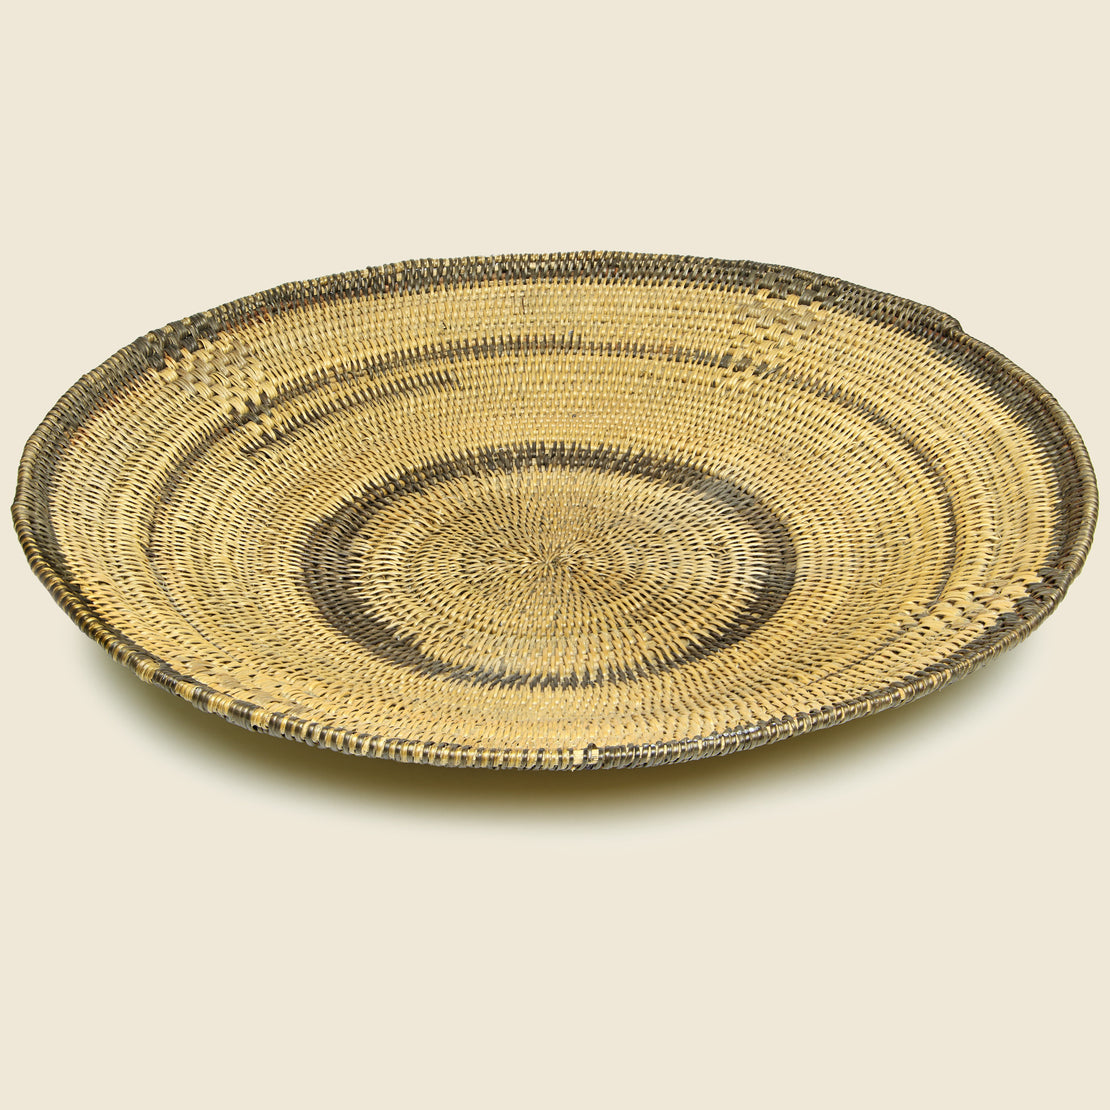 Vintage Large Coiled African Basket